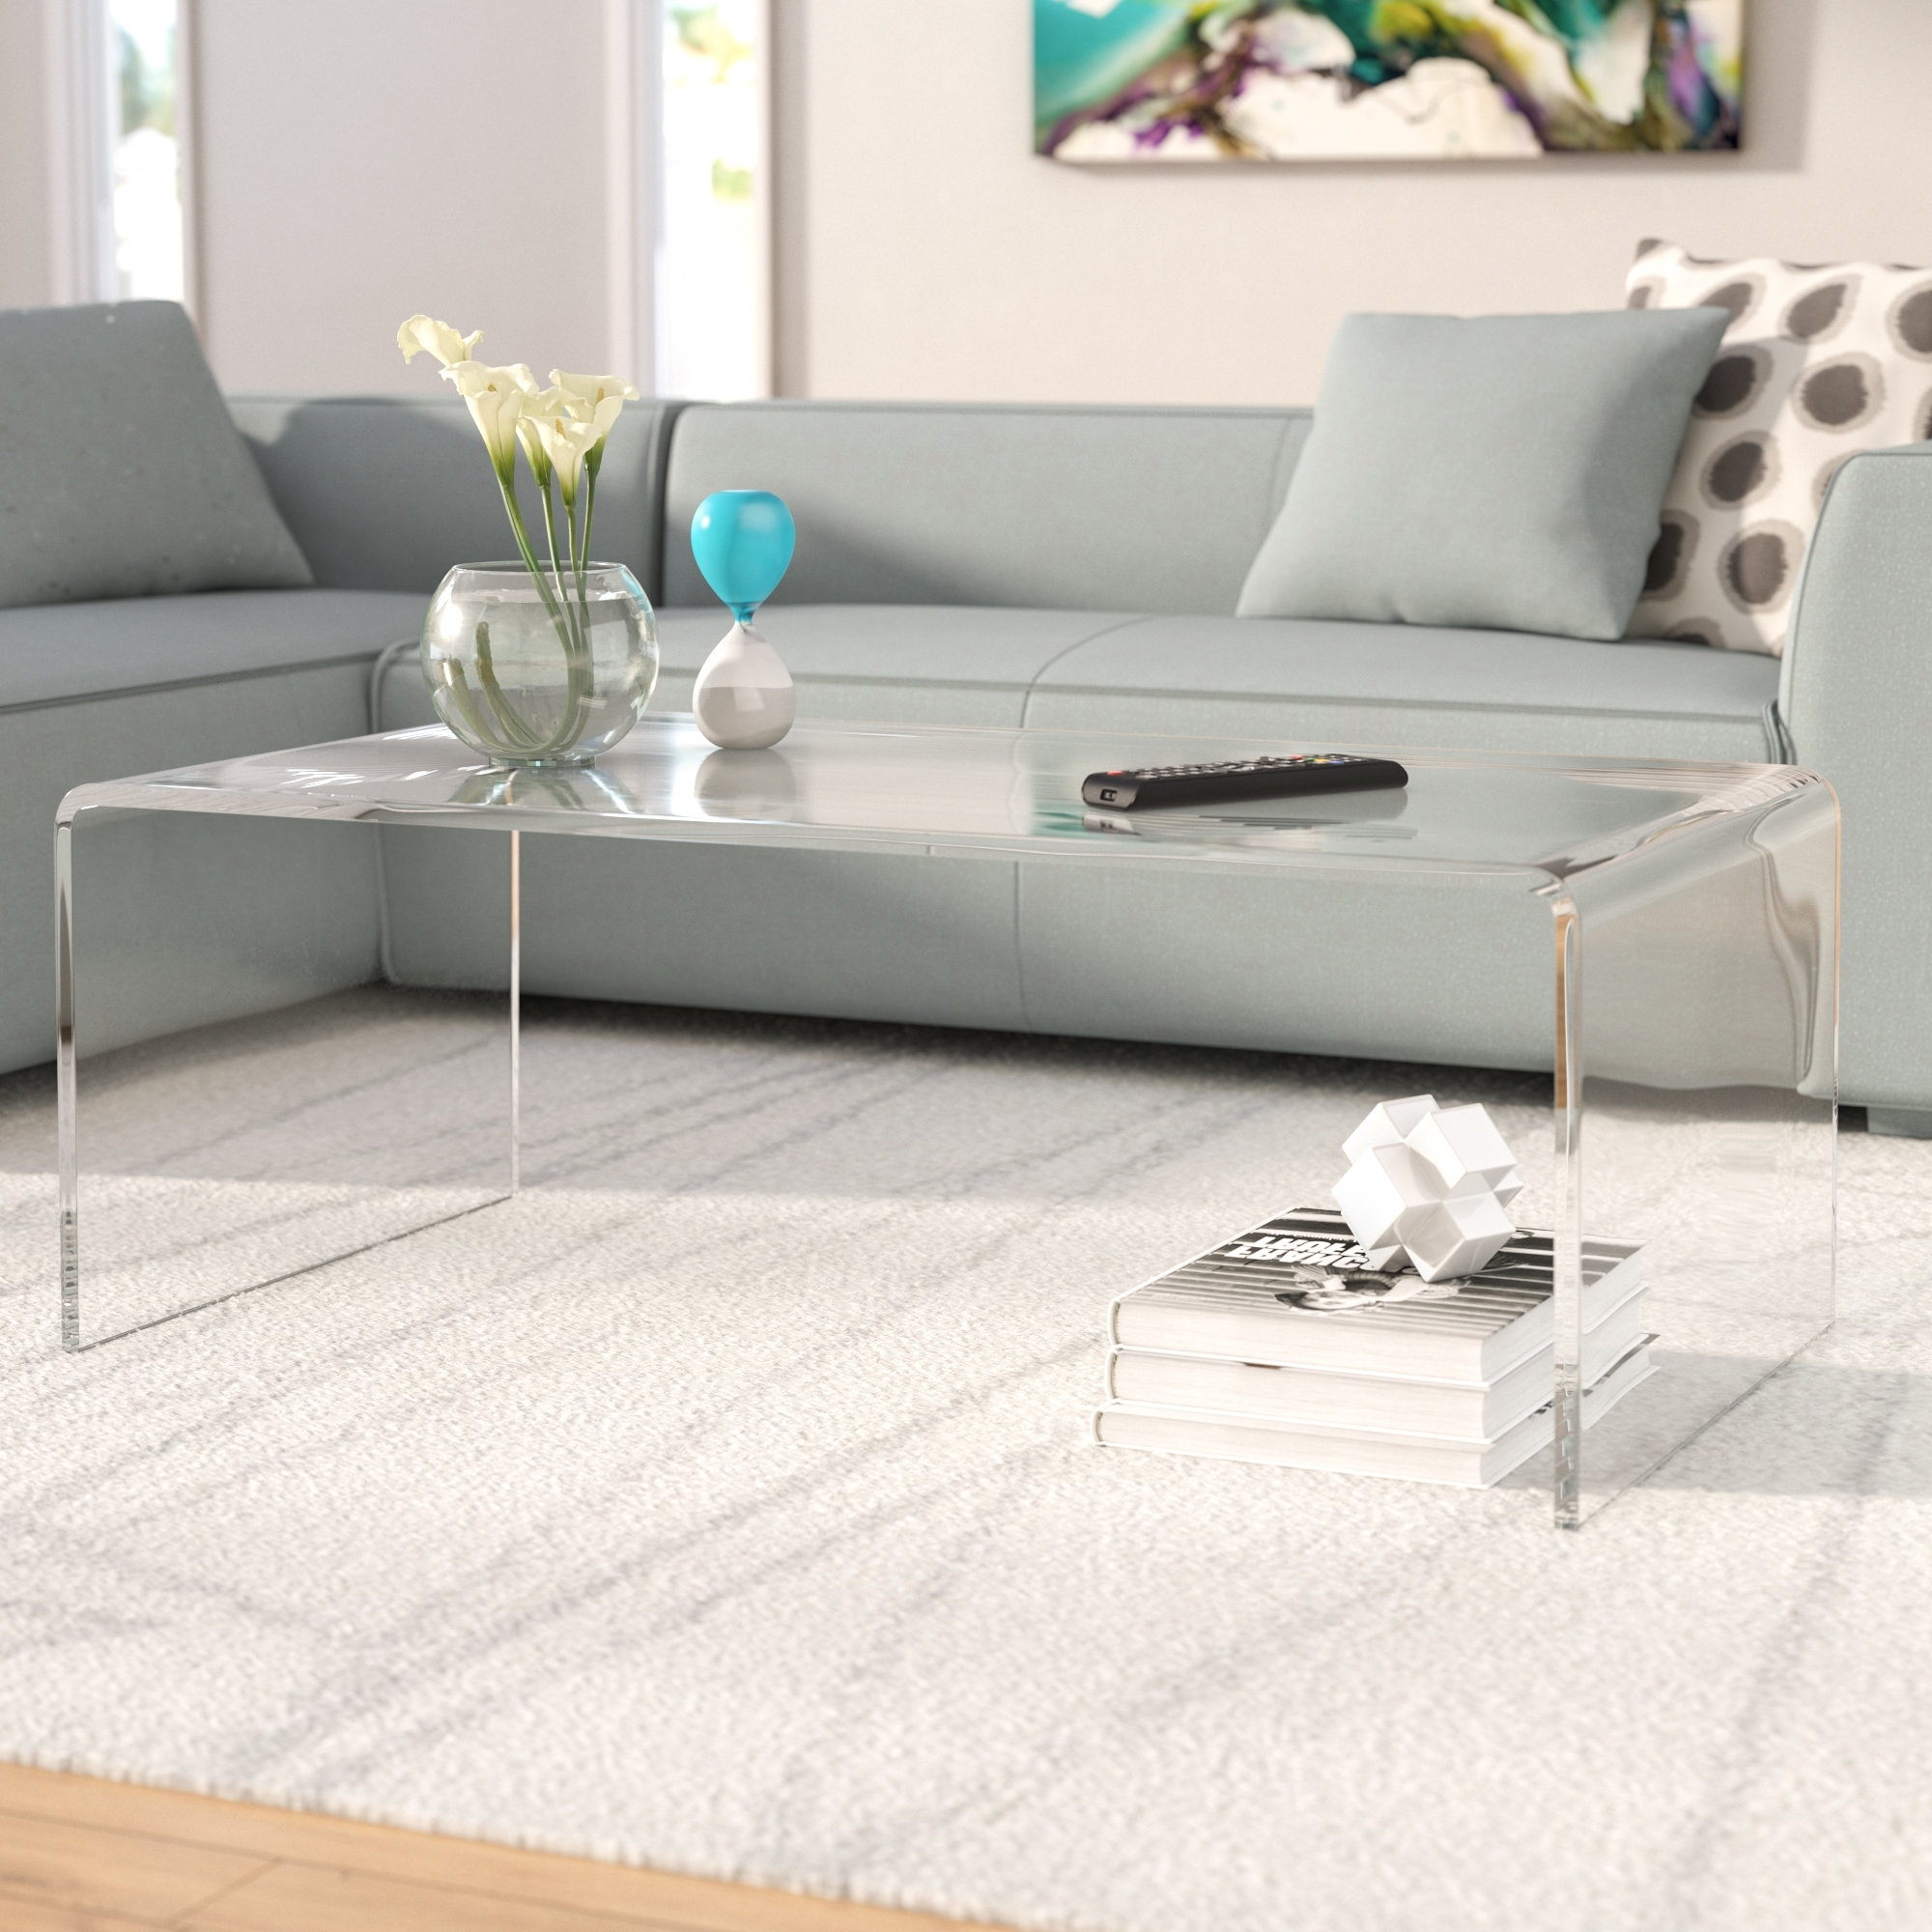 Wayfair Throughout Popular Peekaboo Acrylic Tall Coffee Tables (View 19 of 20)